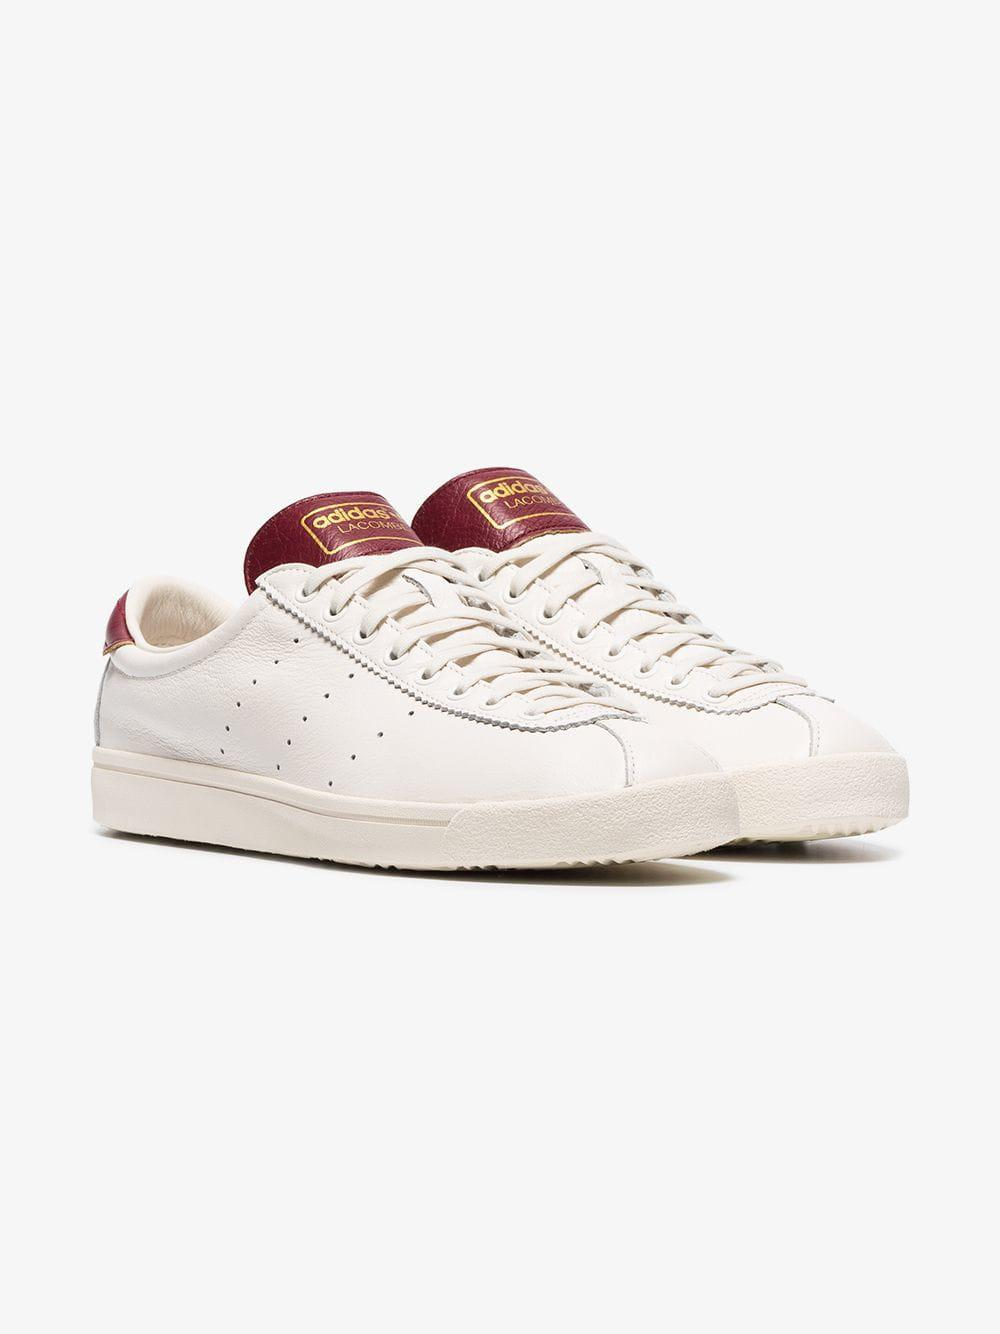 timeless design 75fe1 56ec1 Adidas - White And Burgundy Lacombe Sneakers for Men - Lyst. View fullscreen